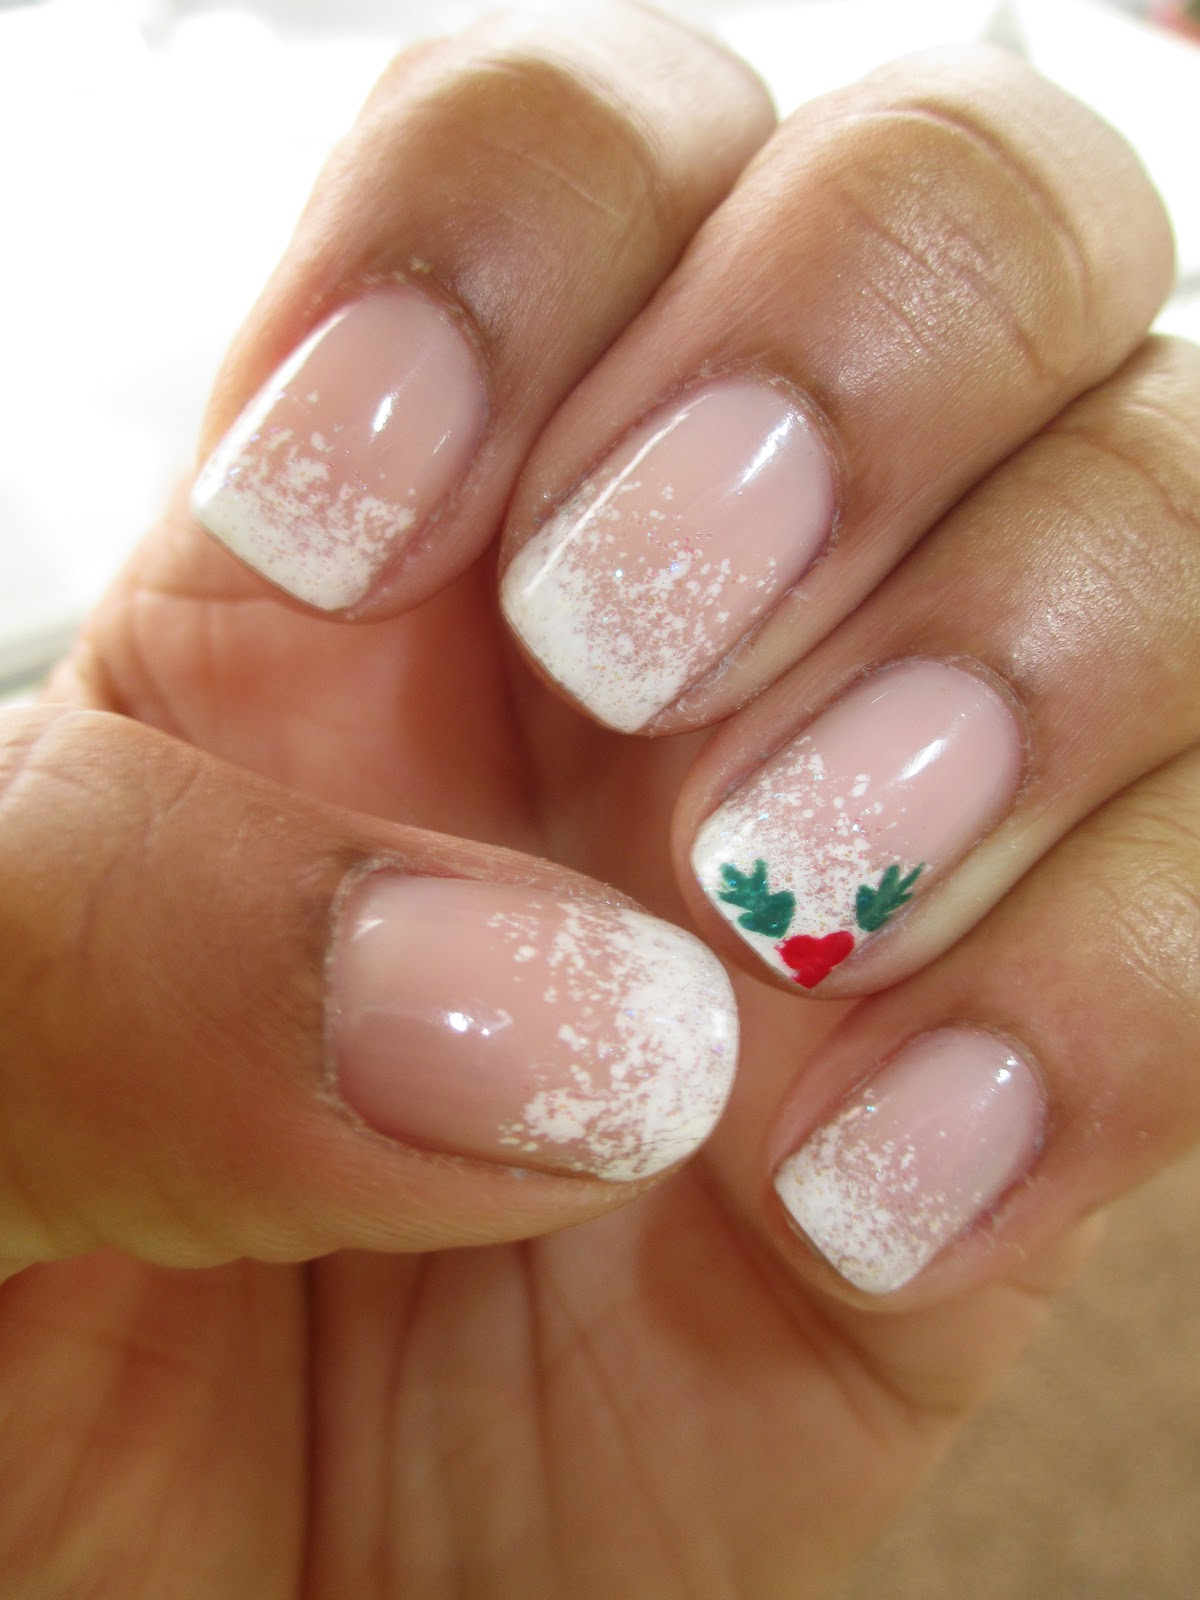 Fairly charming 12 manis of christmas 2 holly essie sugar daddy sally hansen white on china glaze hey sailor julep hoch prinsesfo Gallery